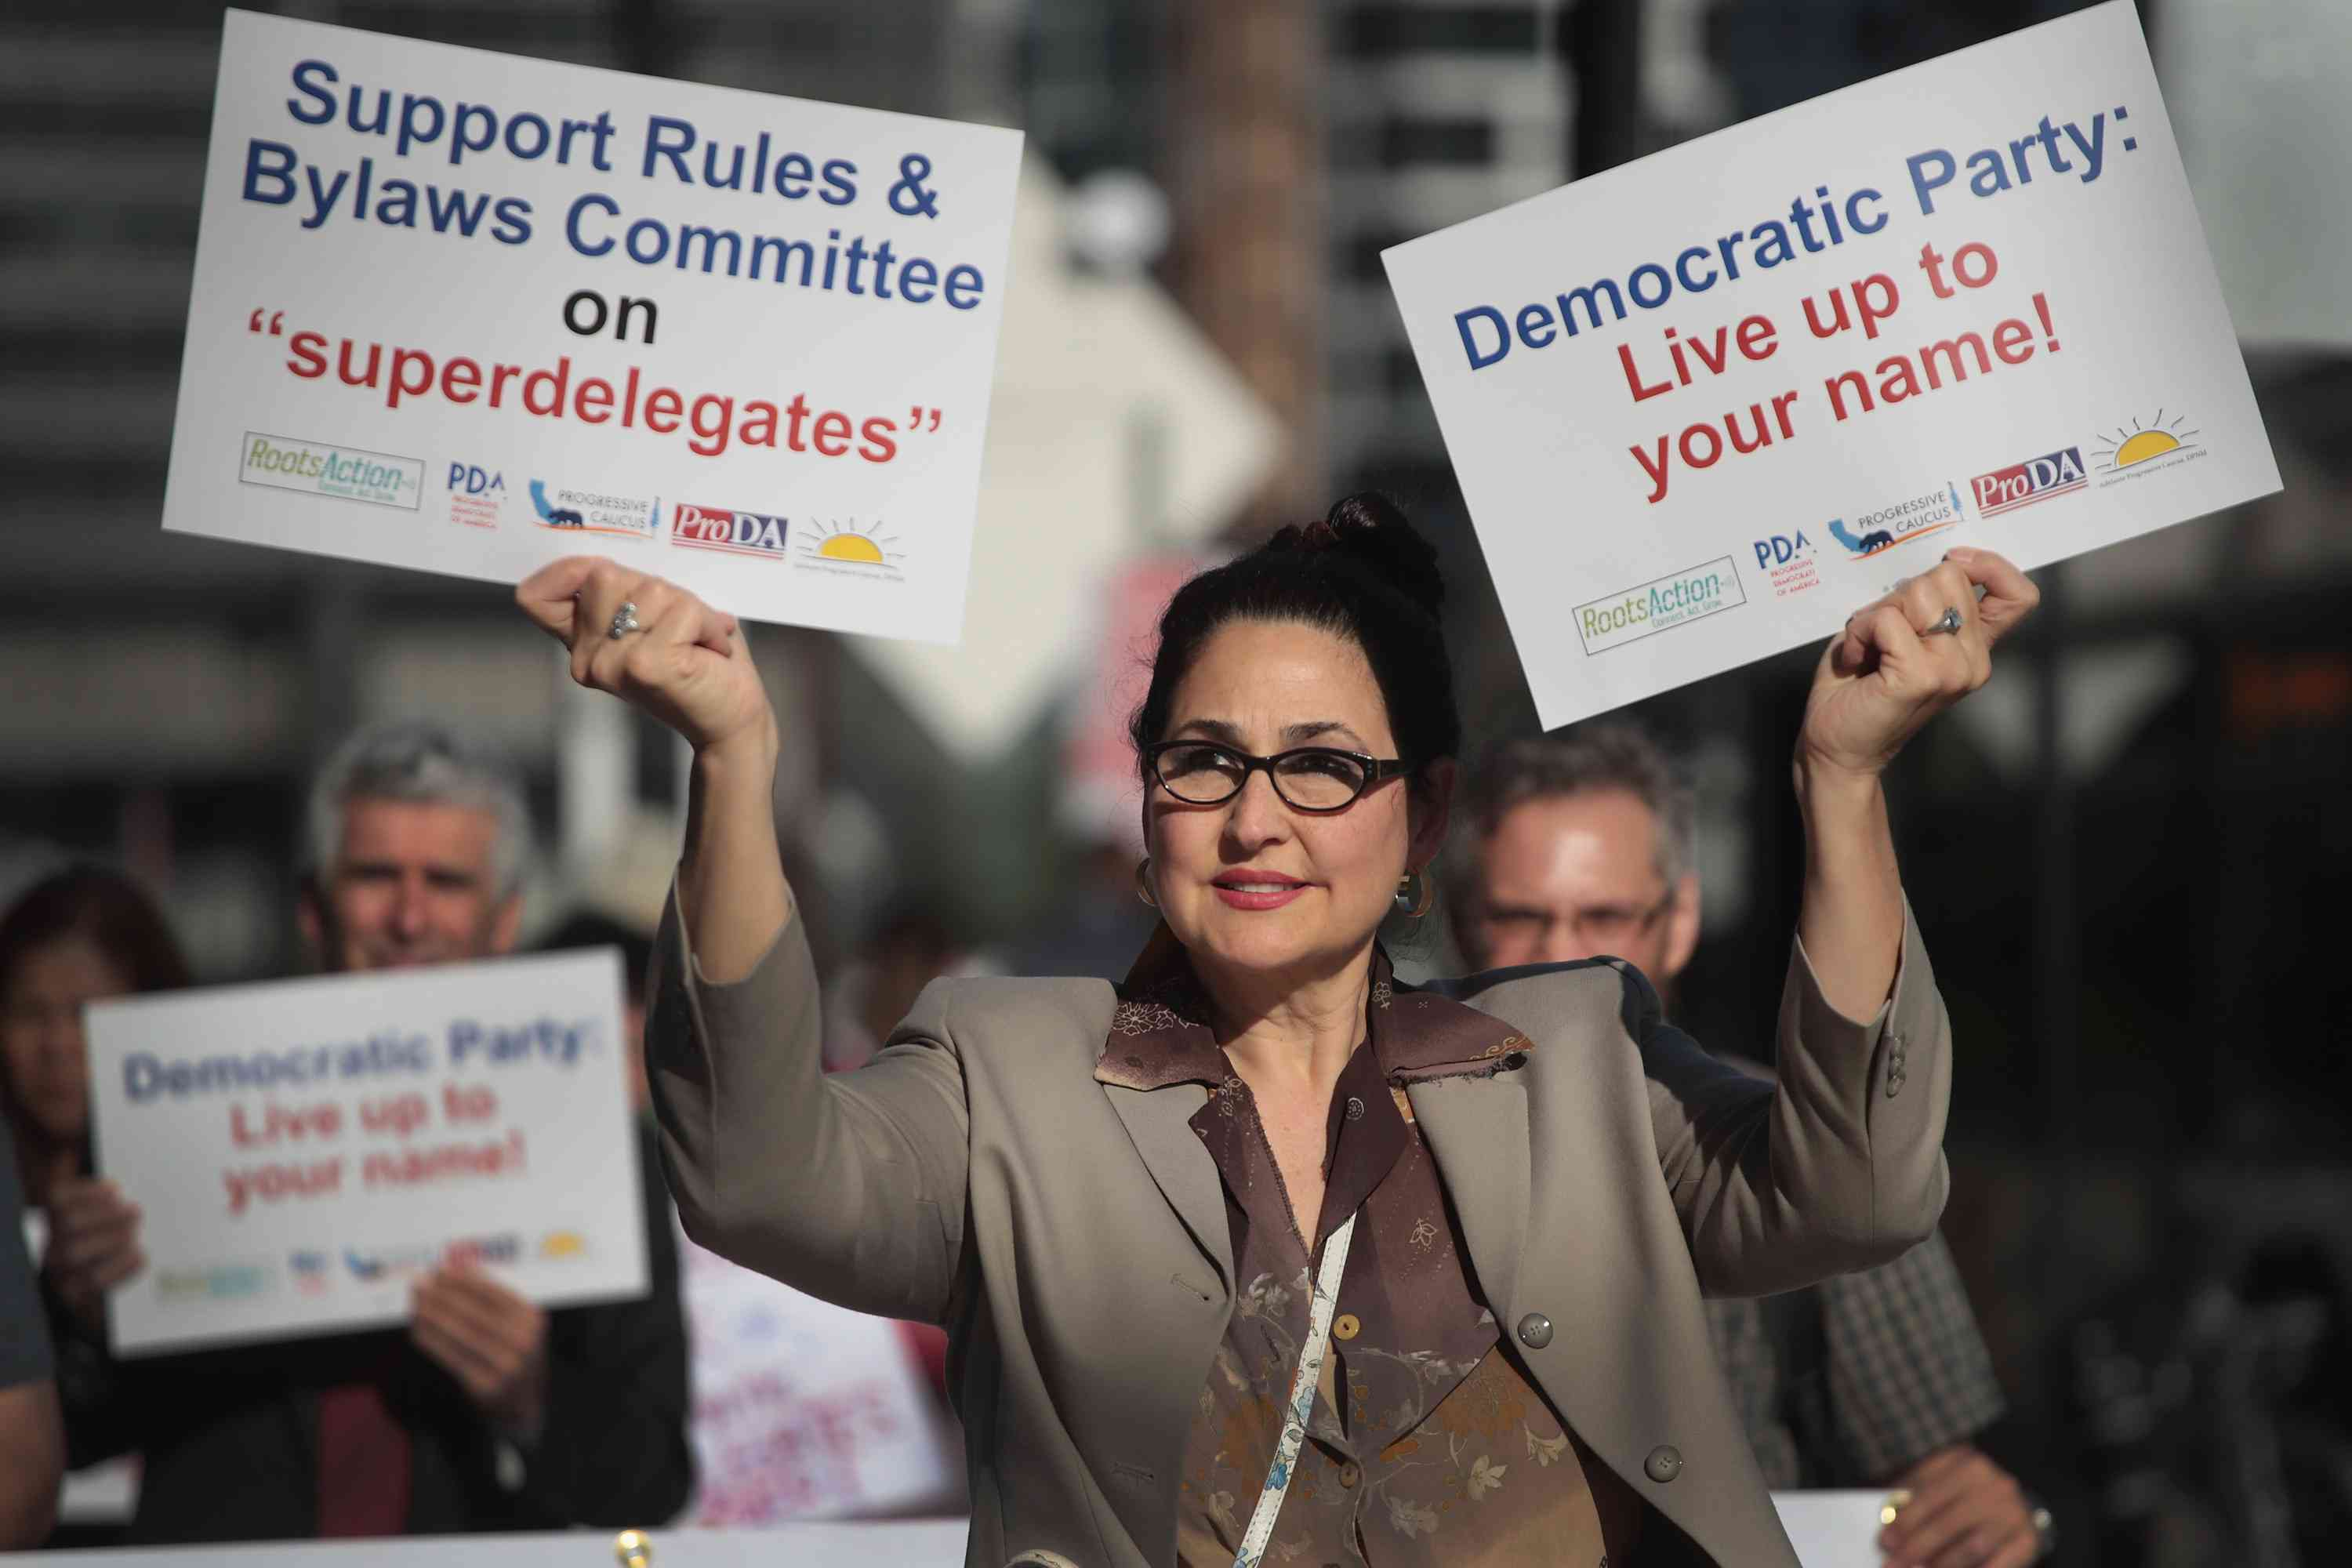 Demonstrators protest the use of superdelegates by the Democratic party, August 23, 2018 in Chicago, Illinois.